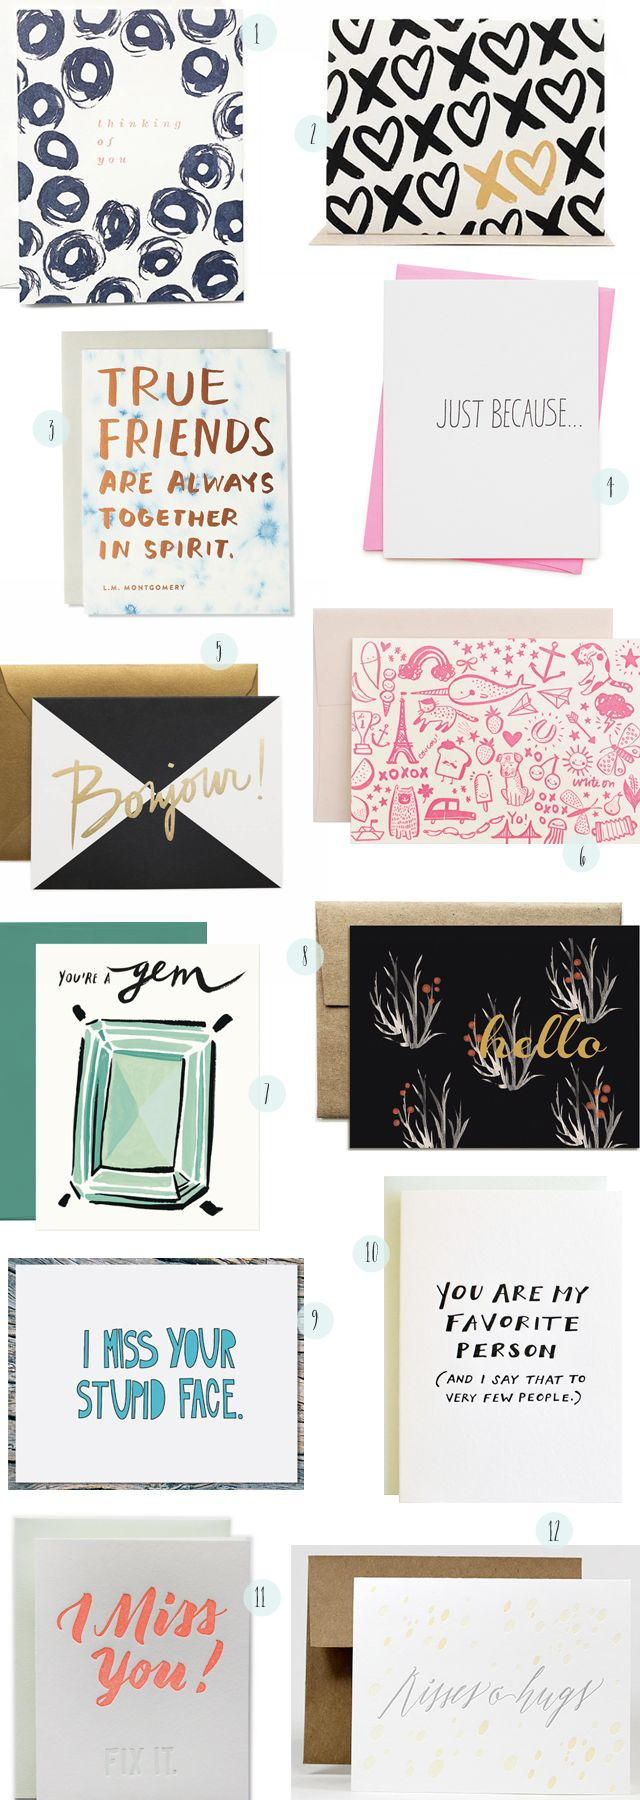 Just Because Cards: http://ohsobeautifulpaper.com/2015/04/stationery-a-z-just-because-cards/ | 1. Moglea; 2. Meeschmosh; 3. Sycamore Street Press; 4. Ashkahn; 5. Garance Doré for Rifle Paper Co.; 6. Hello!Lucky; 7. Idlewild Co.; 8. Ferme à Papier; 9. Near Modern Disaster; 10. Odd Daughter Co.; 11. Ladyfingers Letterpress; 12. Lilikoi Design + Letterpress